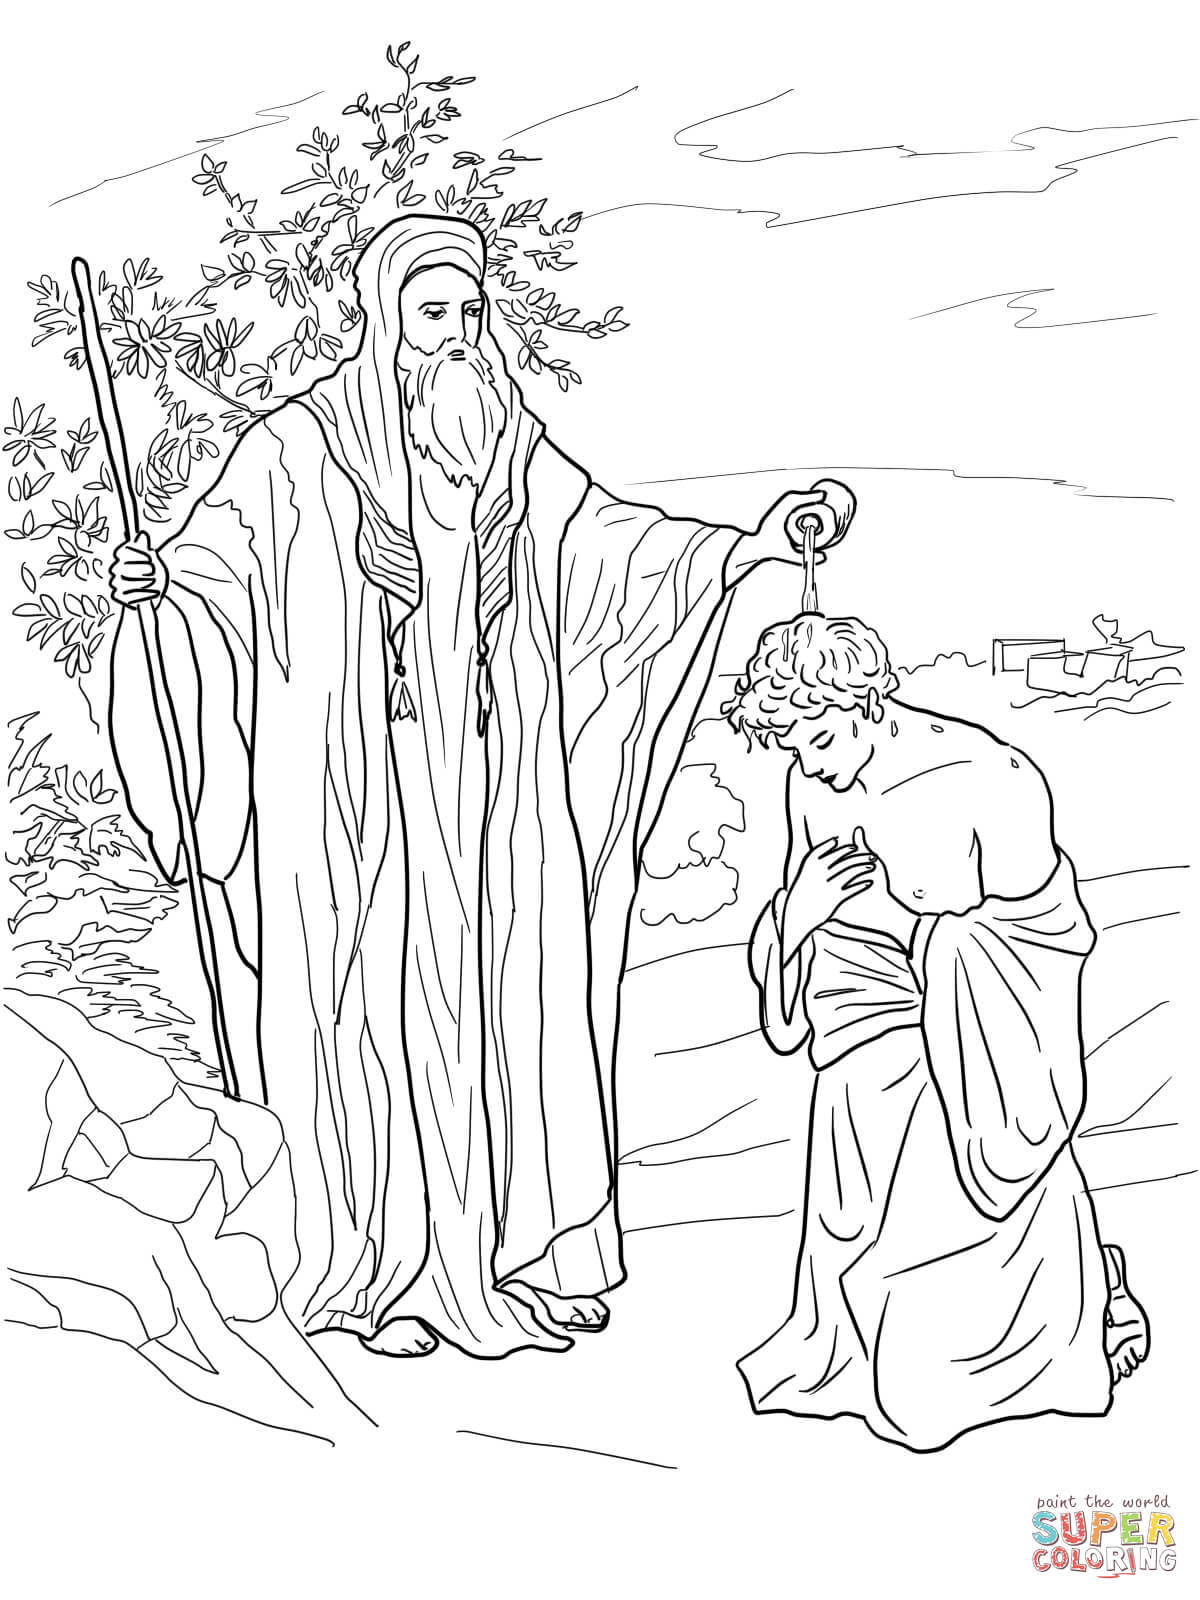 Hannah Brought Samuel to Eli coloring page | Free Printable ... | 1600x1200